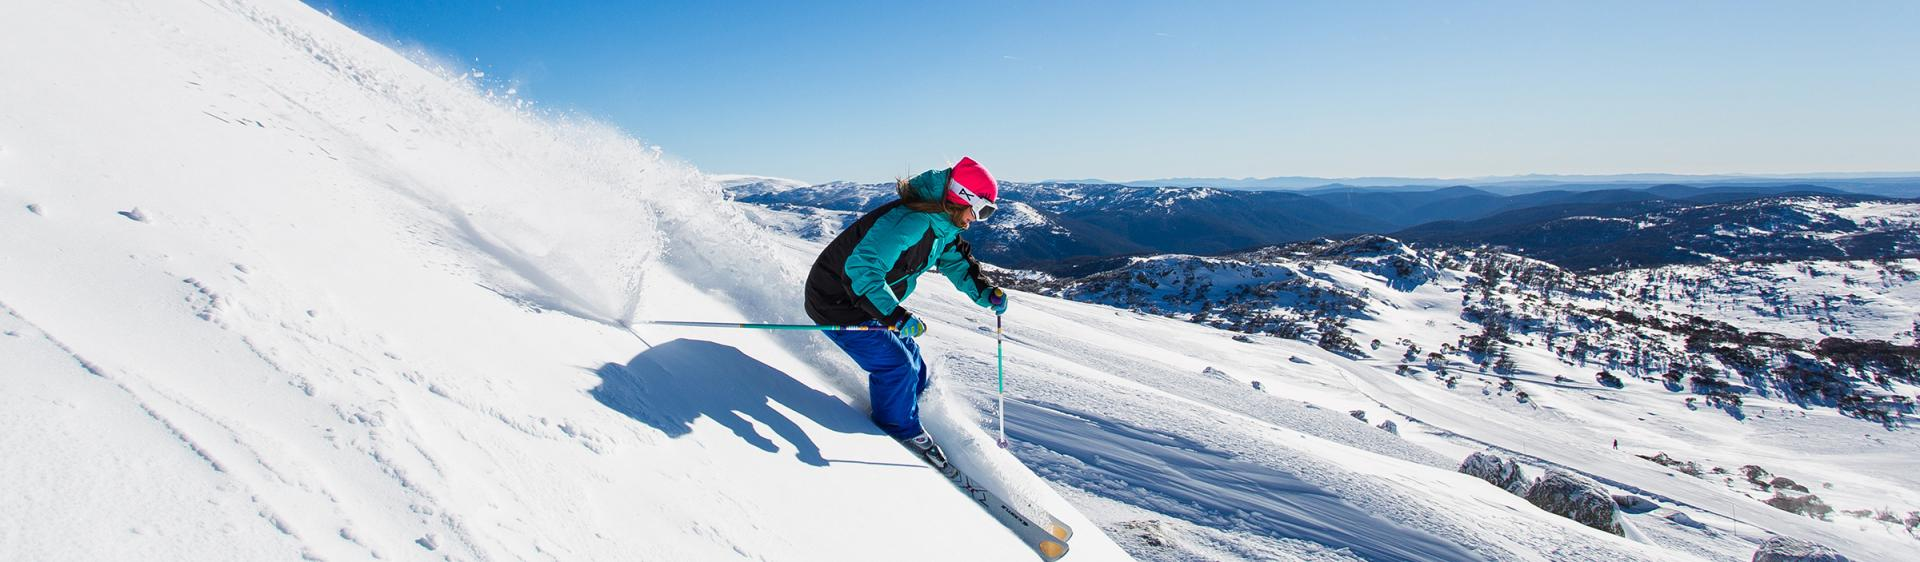 Skiing in Perisher, Snowy Mountains